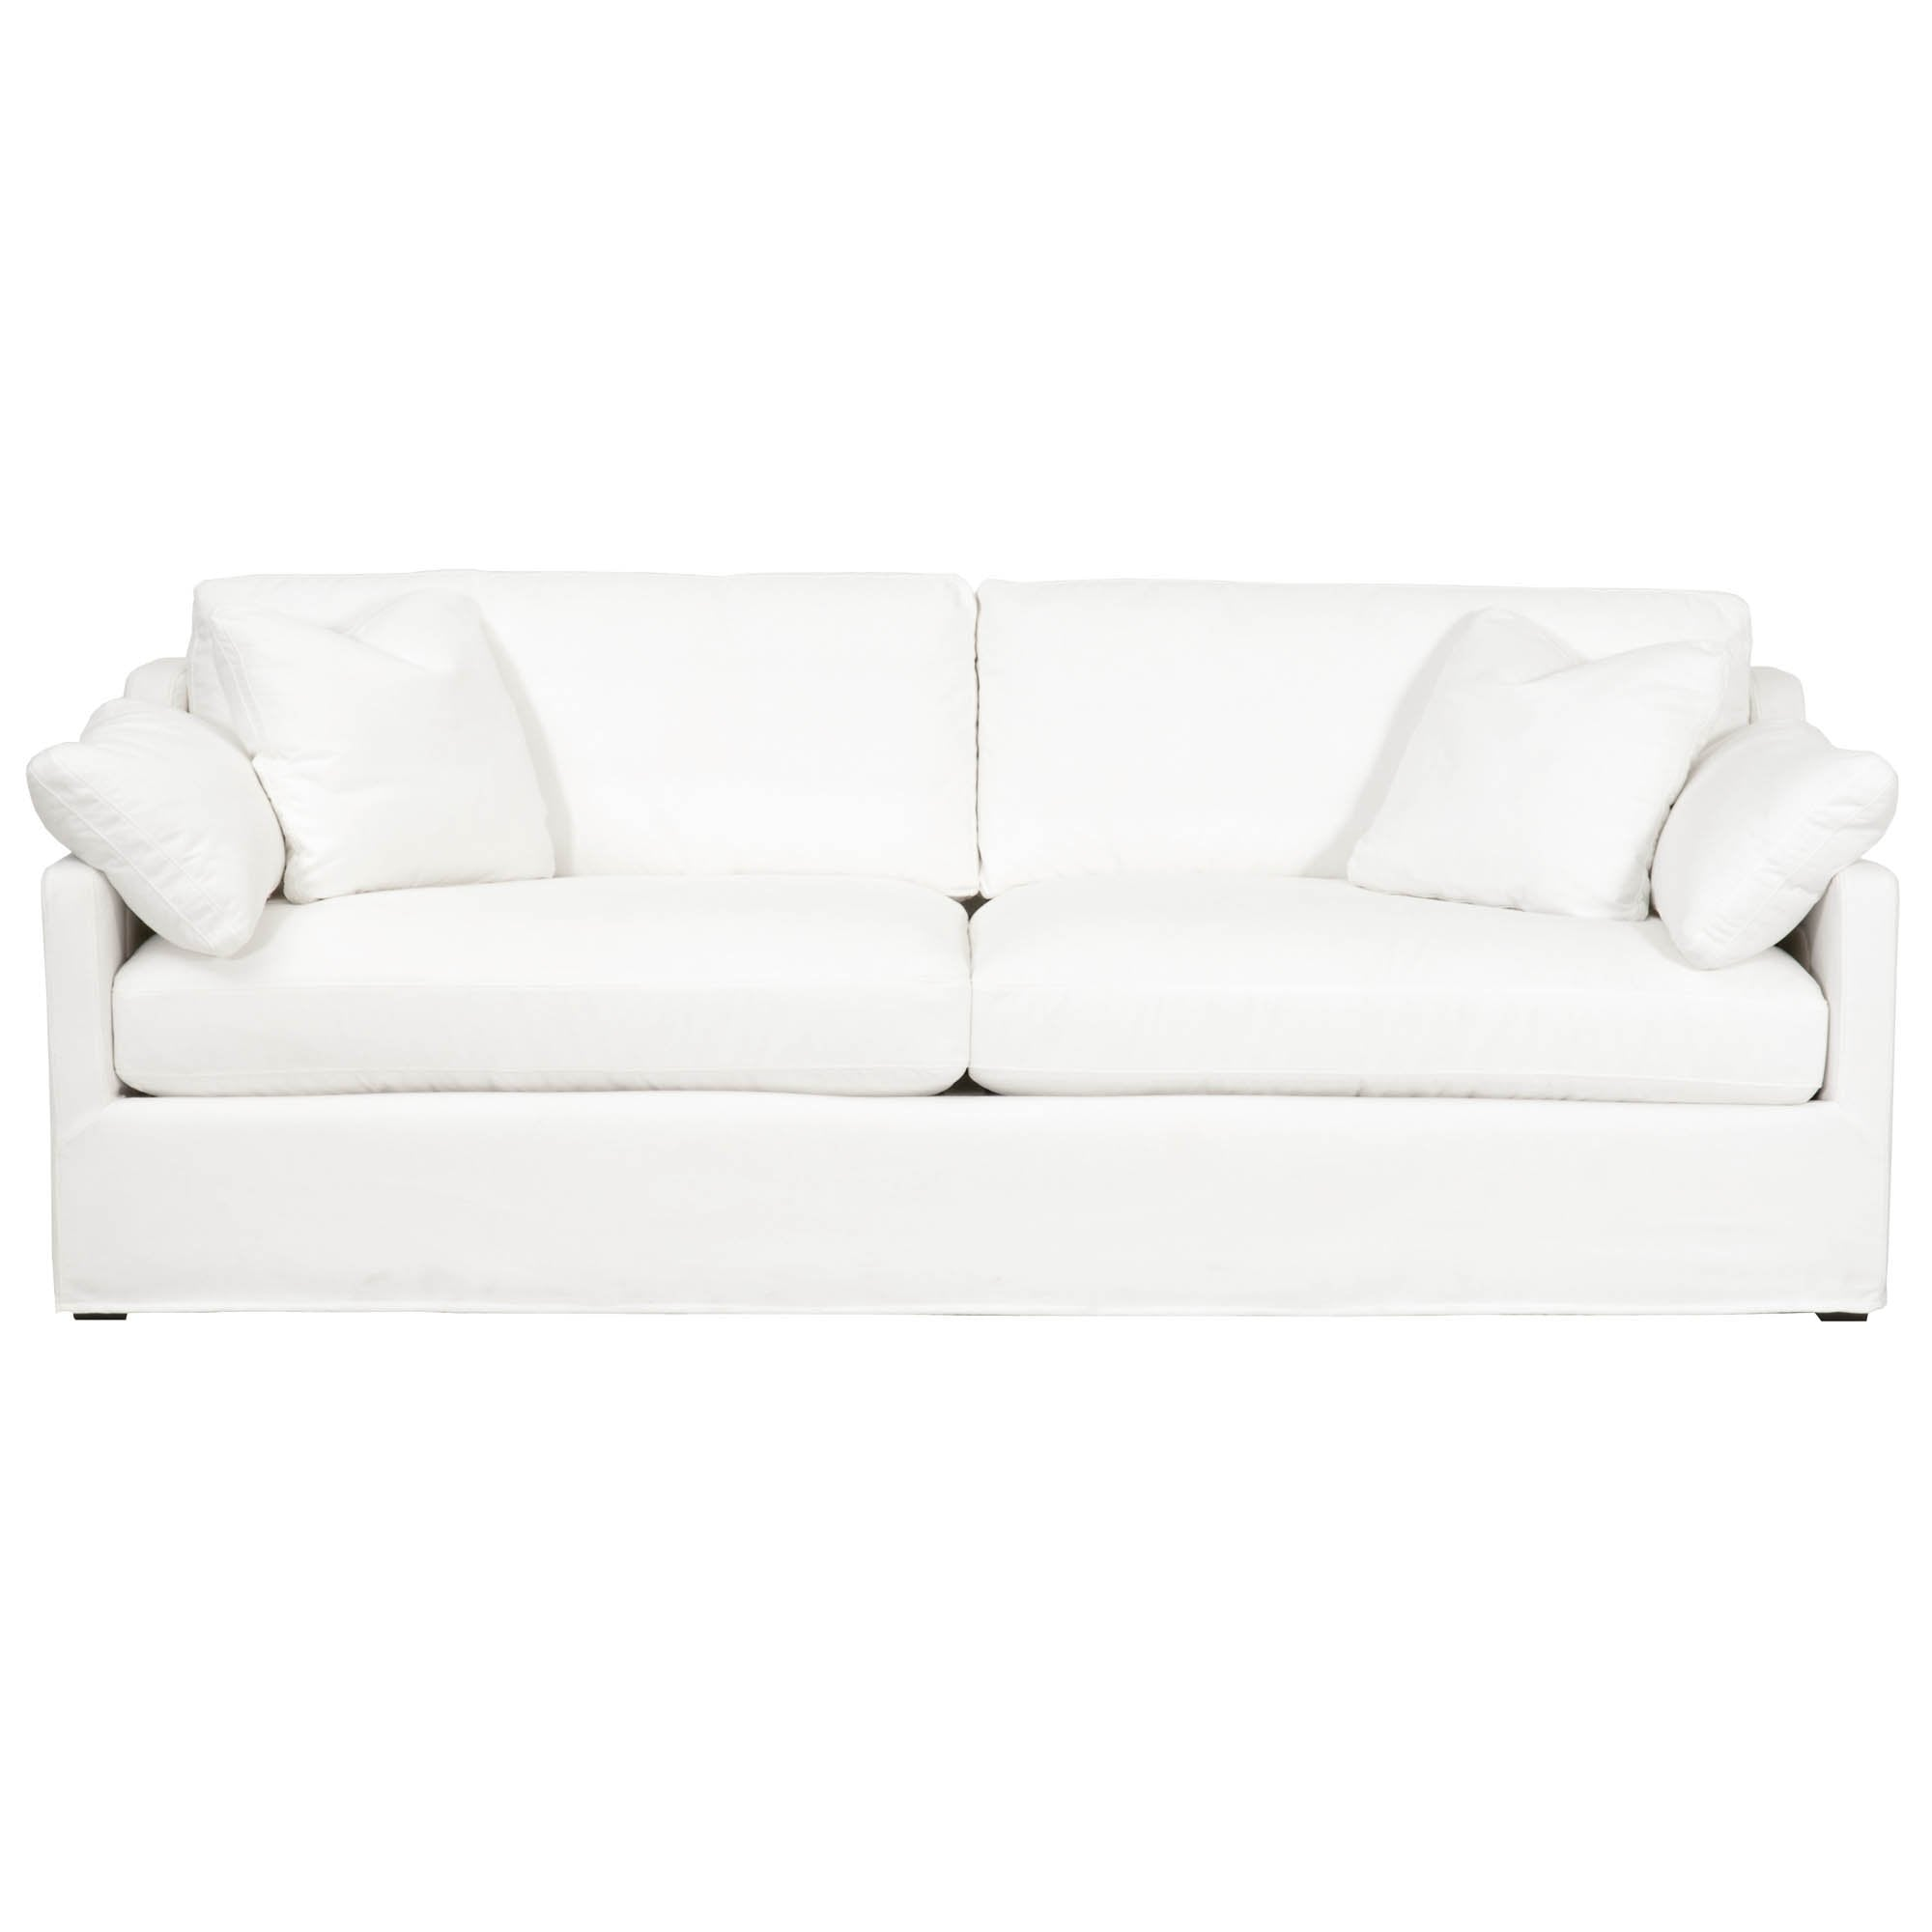 "Lena 94"" Slope Arm Slipcover Sofa"